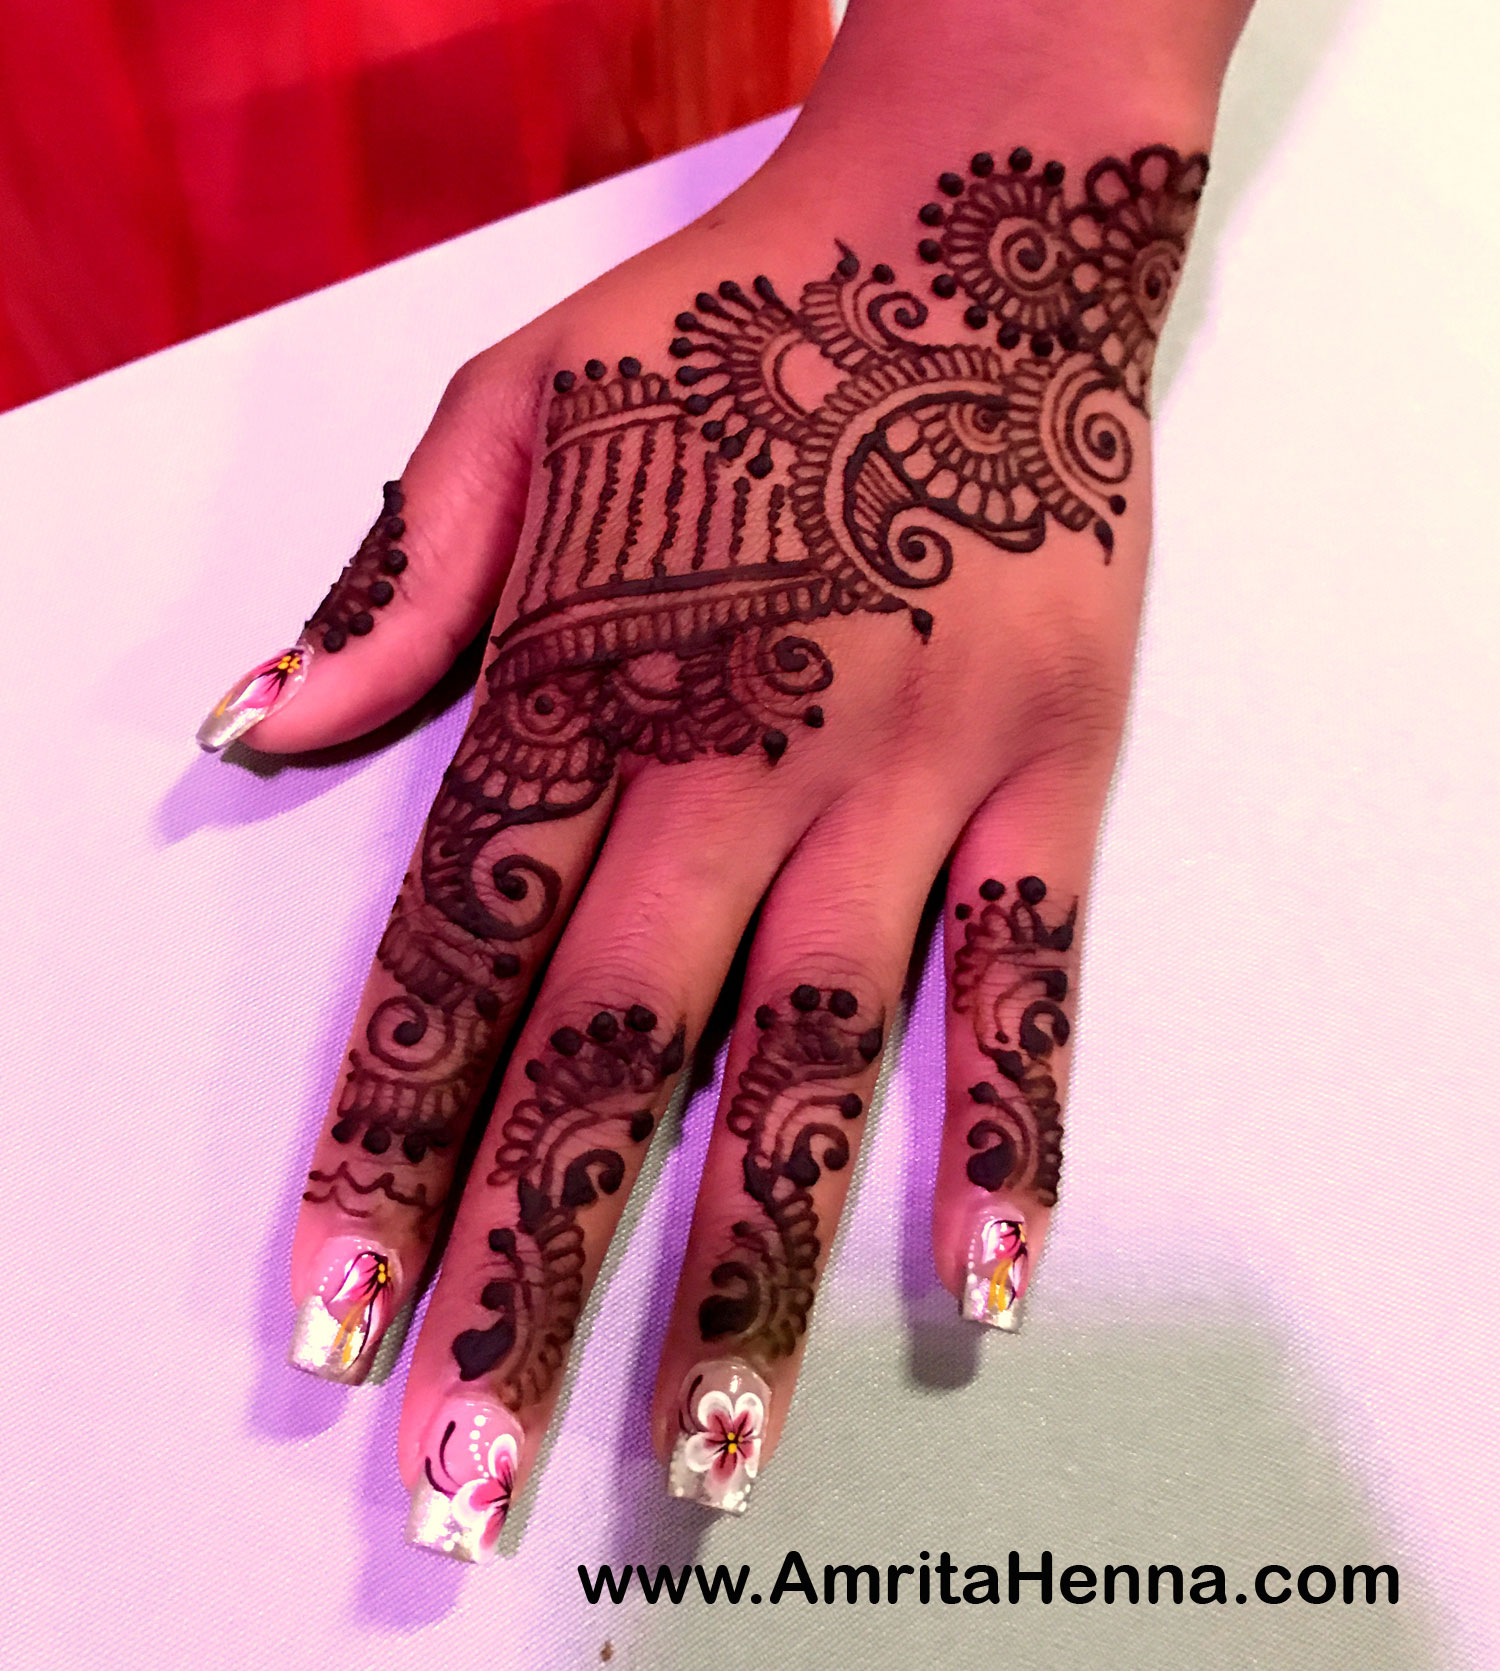 Top 10 Henna Designs for Bridesmaids - 10 Best Mehndi Designs for the Bridesmaids - Top 10 Traditional Mehendi Henna Designs for the Bridesmaids - Most Popular Henna Designs for the Bridesmaids in an Indian Wedding - Top 10 Full Hand Mehandi Designs for the Bridesmaids - Top 10 Henna Mehndi Designs if you are the Bridesmaid in your Best Friend's Wedding - Top 10 Bridesmaids Mehendi Henna Designs for your Sister's Wedding